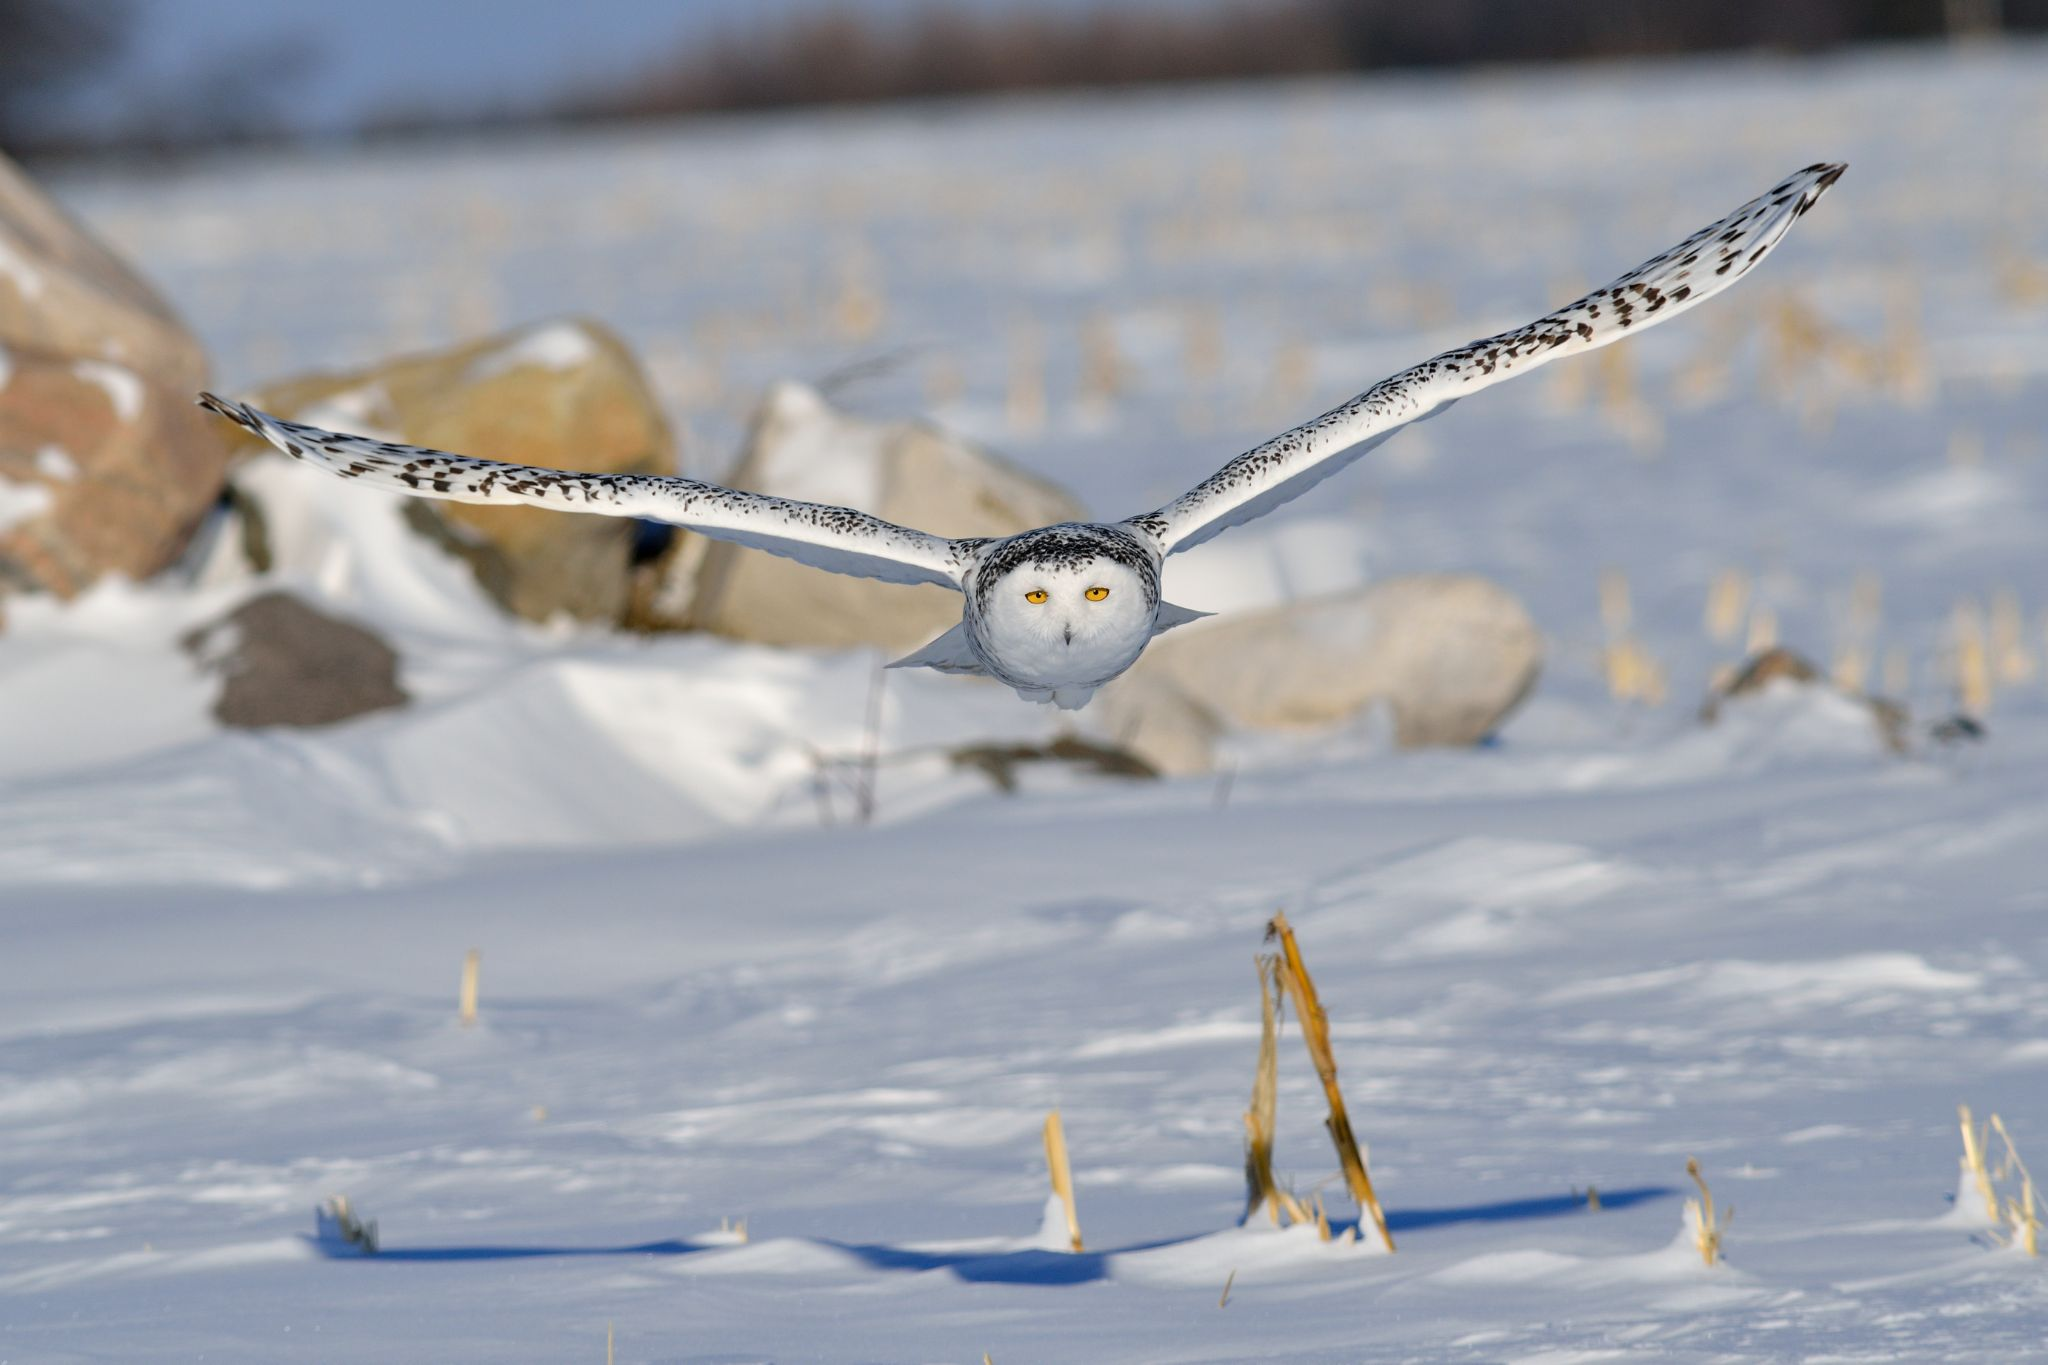 Snowy owl by dominic.roy.395